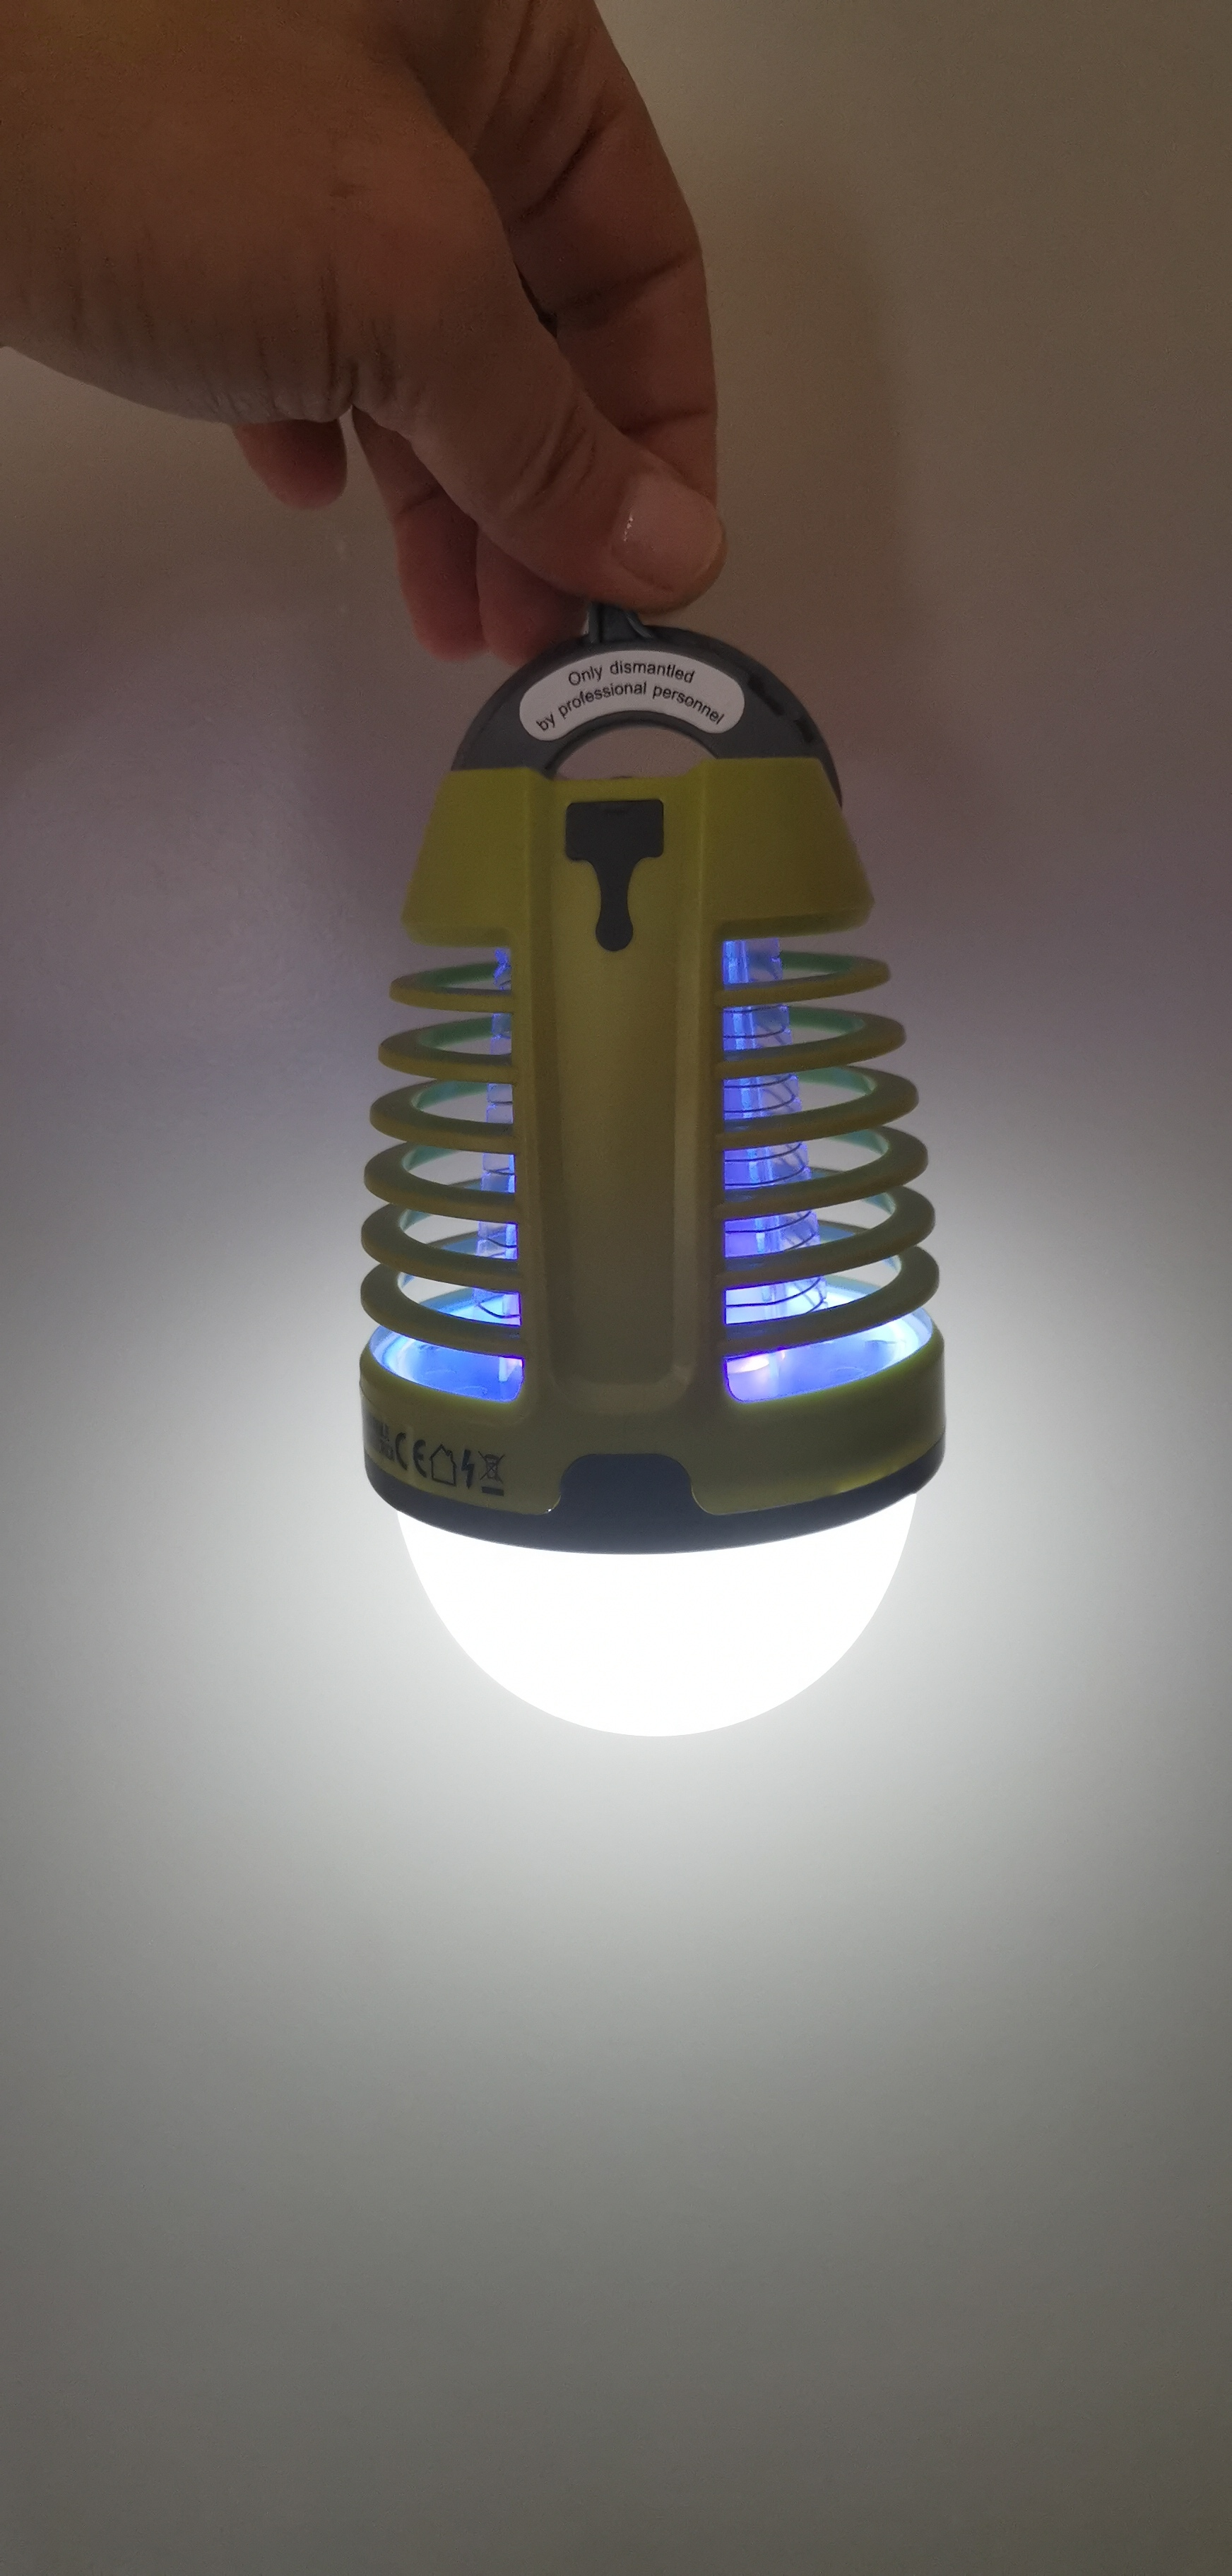 NIEUW LED tent en camping lamp - 2 in 1